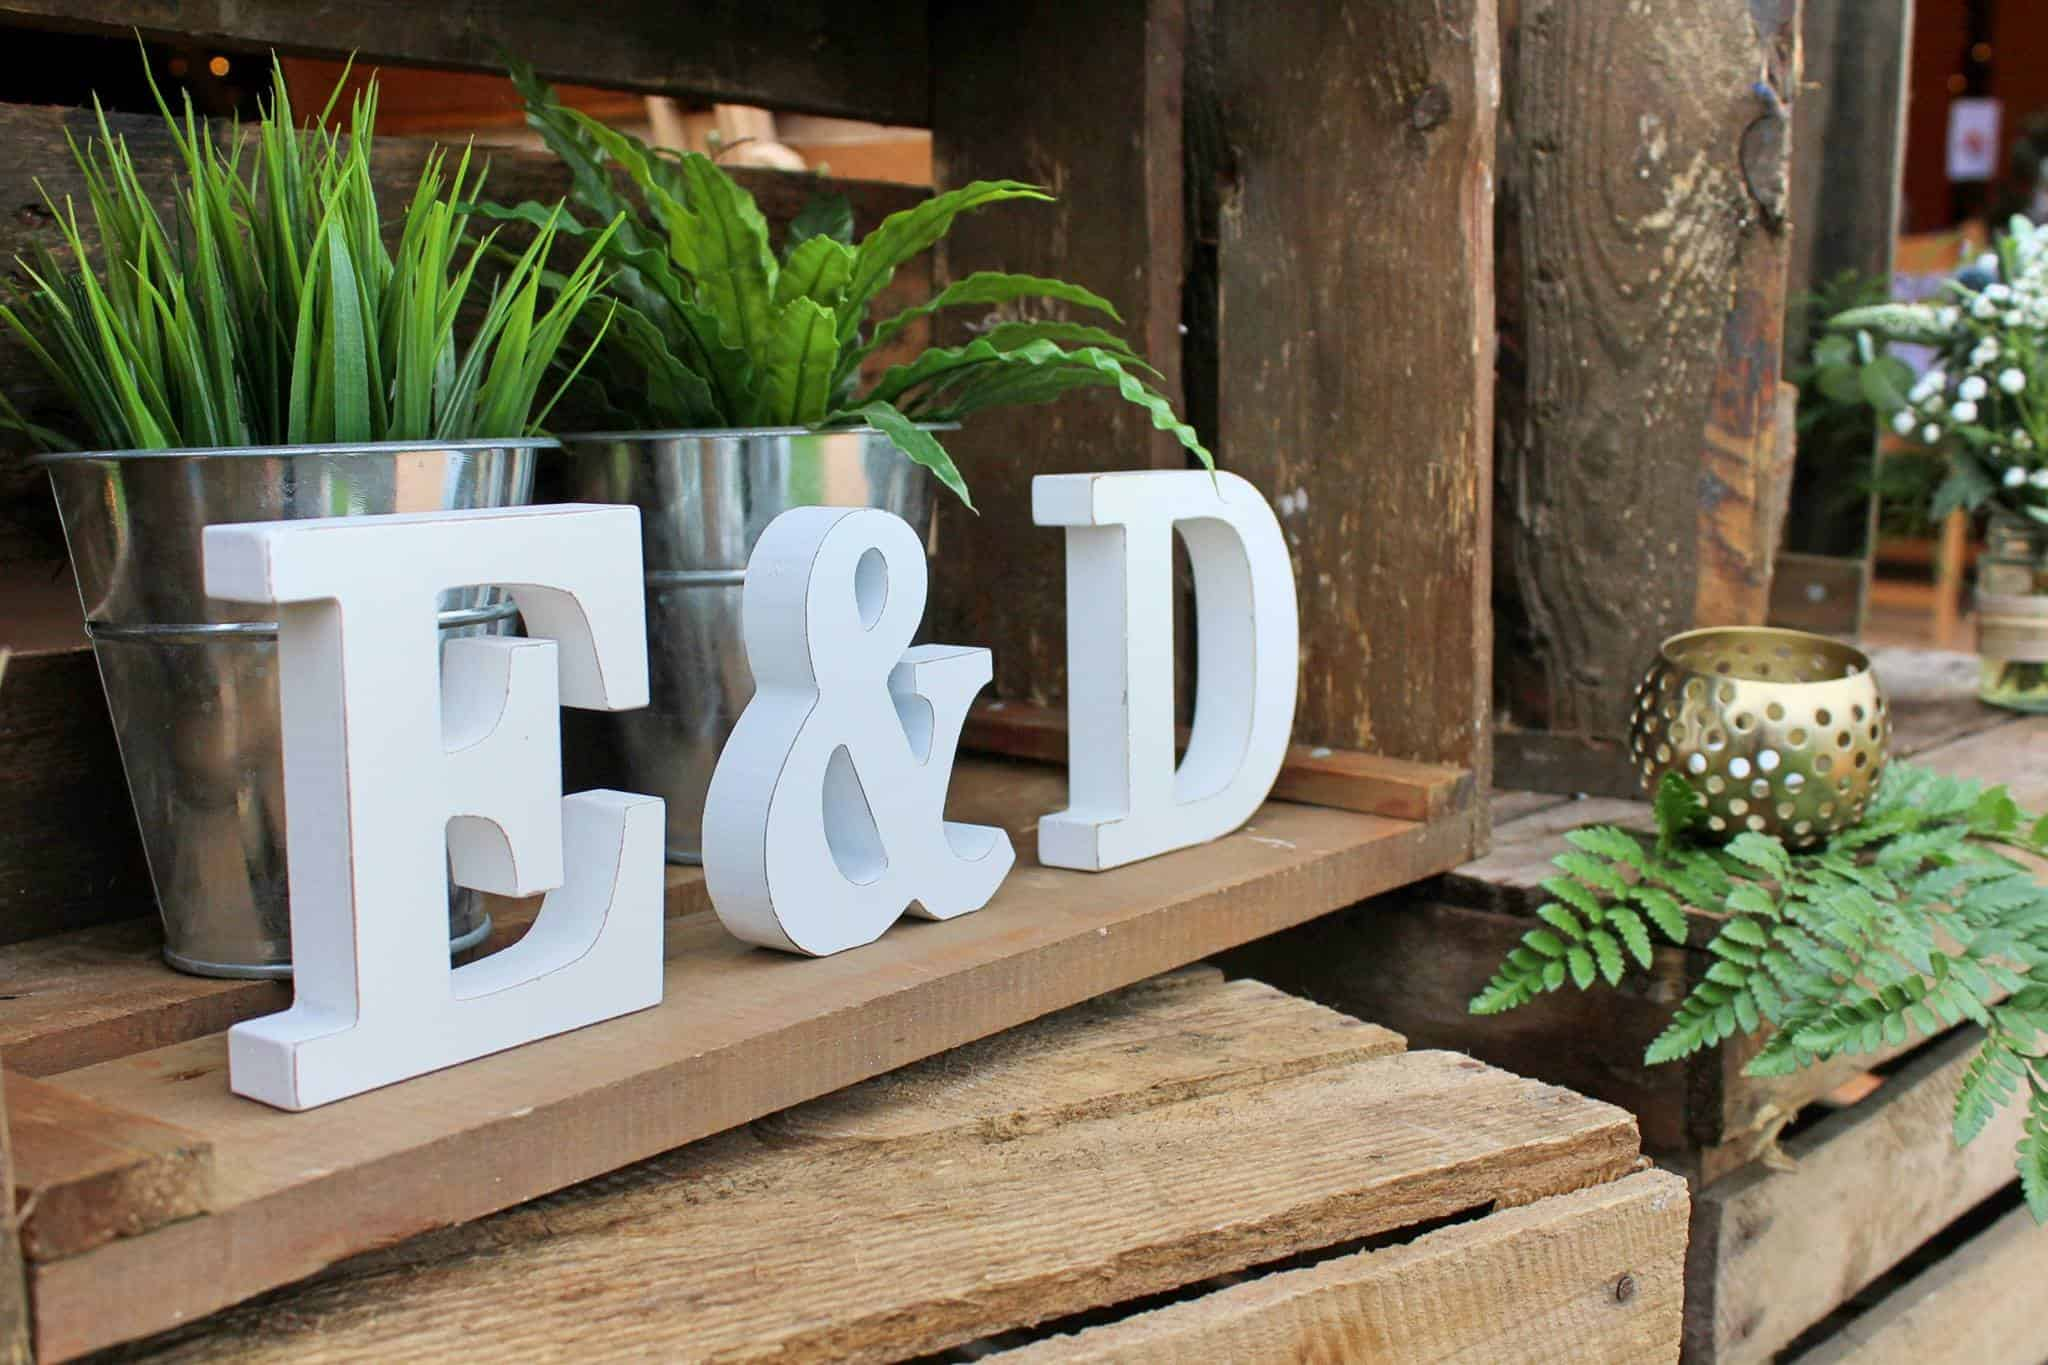 E&D Letters - Woodland themed styling by The Rustic Wedding Company